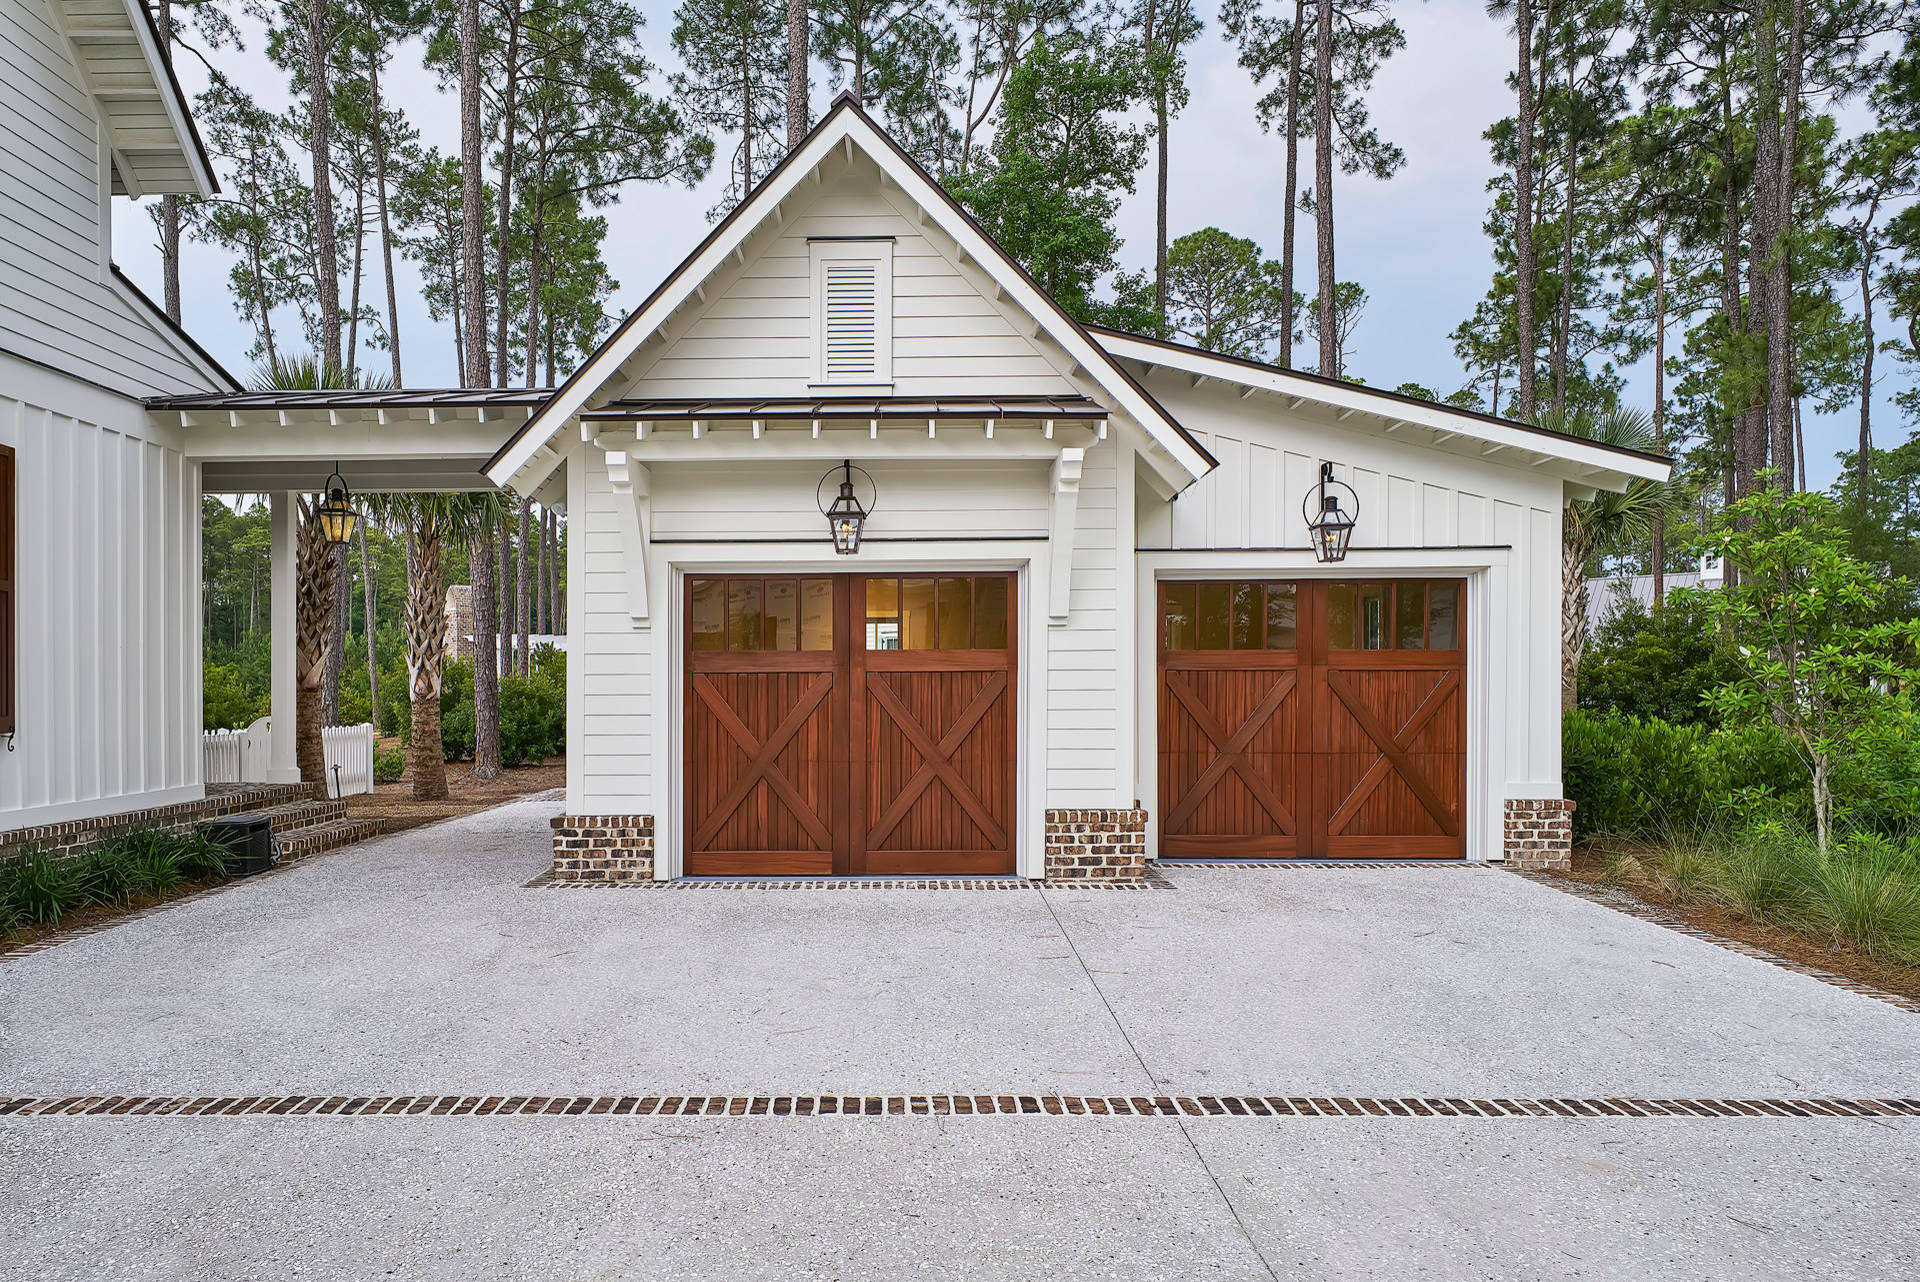 75 Beautiful Detached Garage Pictures & Ideas | Houzz on